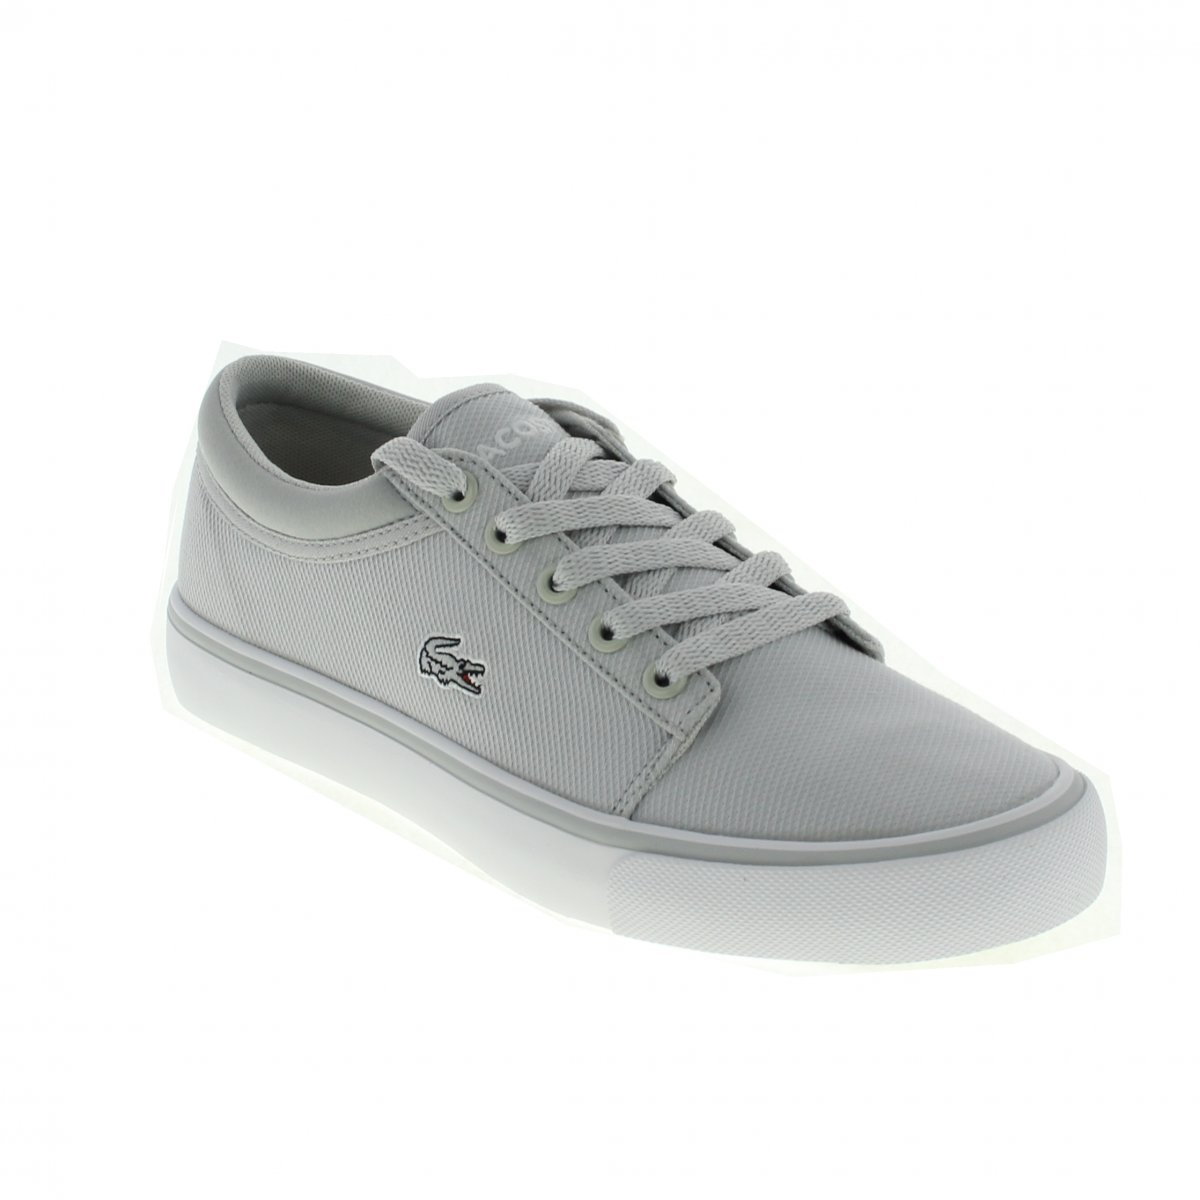 f88c9a84a3fdf Tenis Lacoste 32spw0019334